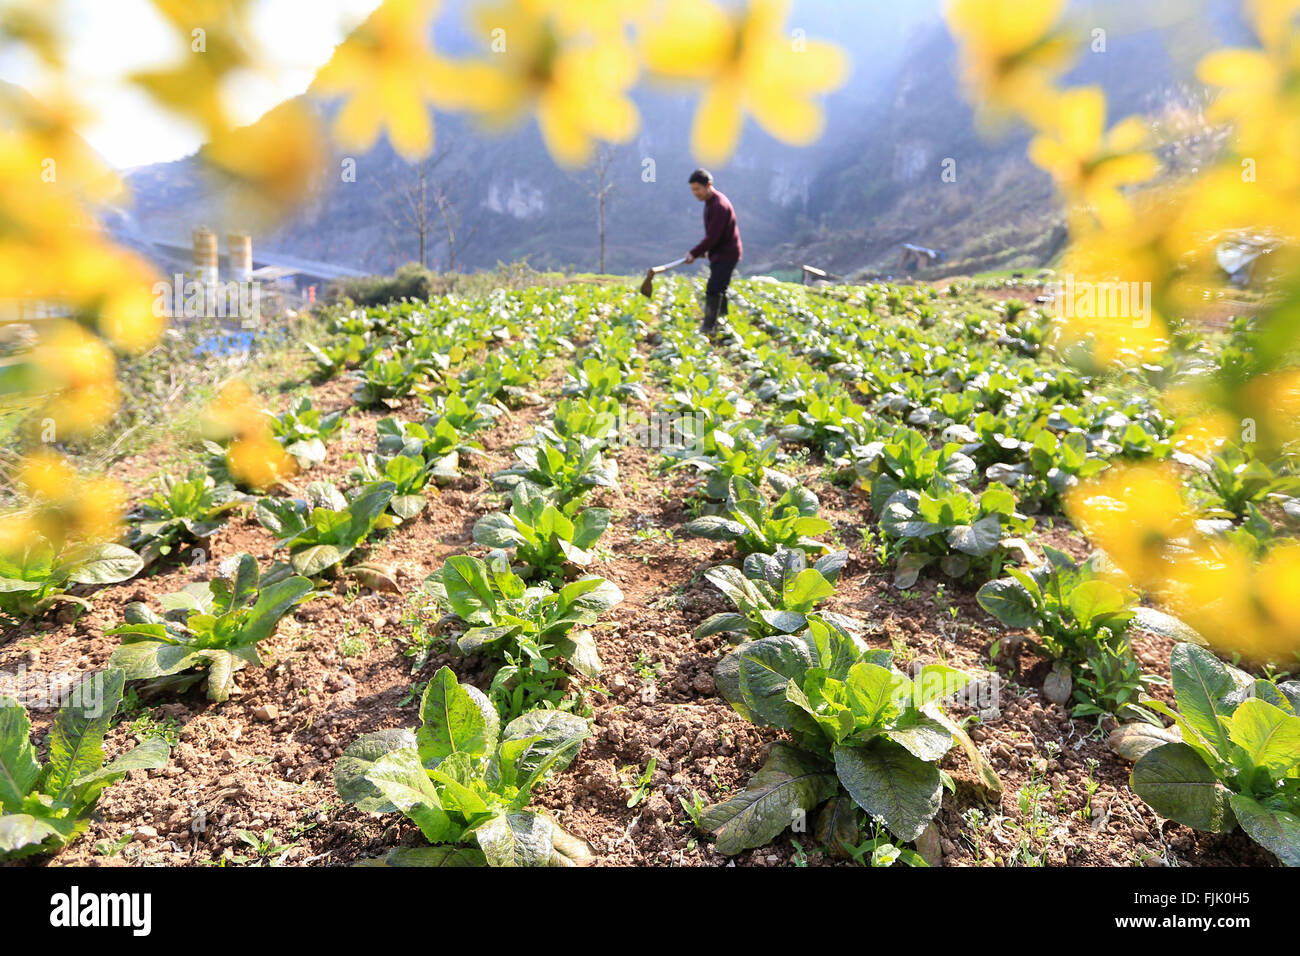 Qiandongnan. 1st Mar, 2016. A farmer works in the fields at Yuangu Township in southwest China's Guizhou Province, - Stock Image